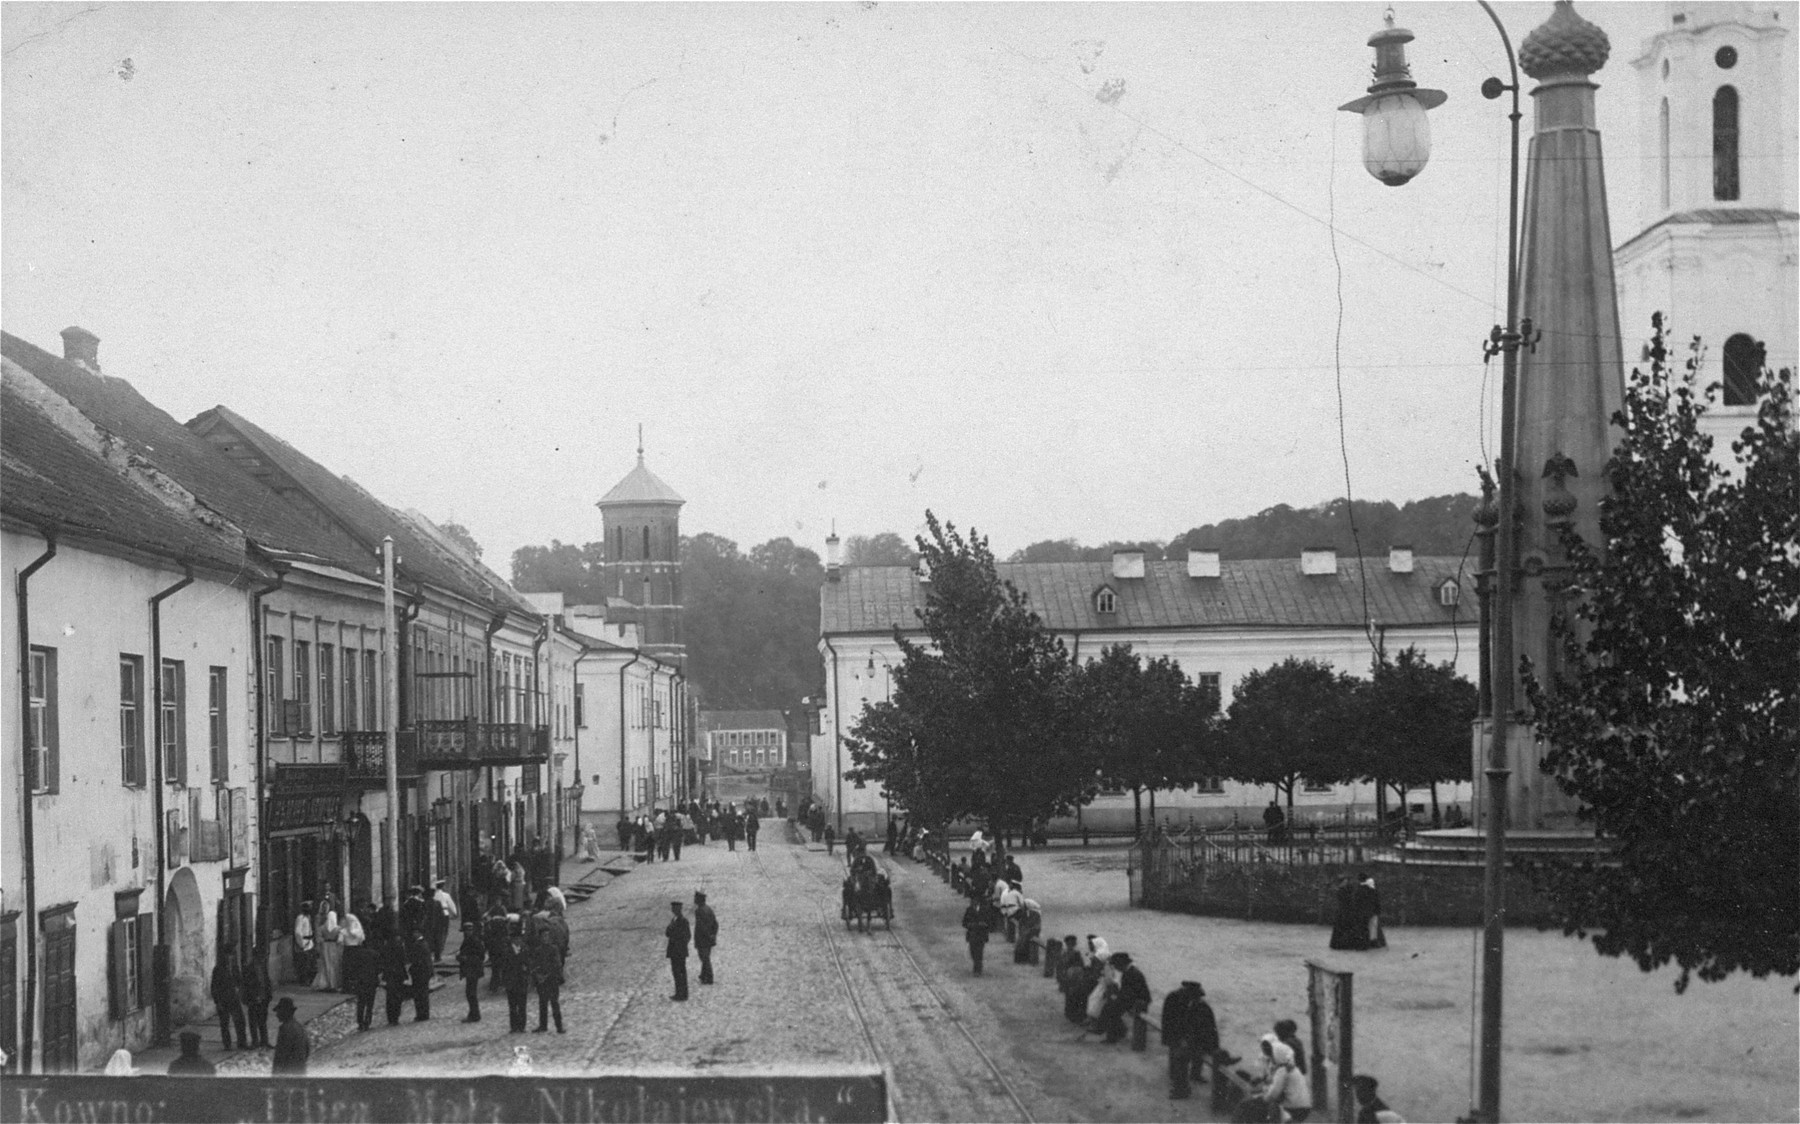 View of a street scene in Kovno.